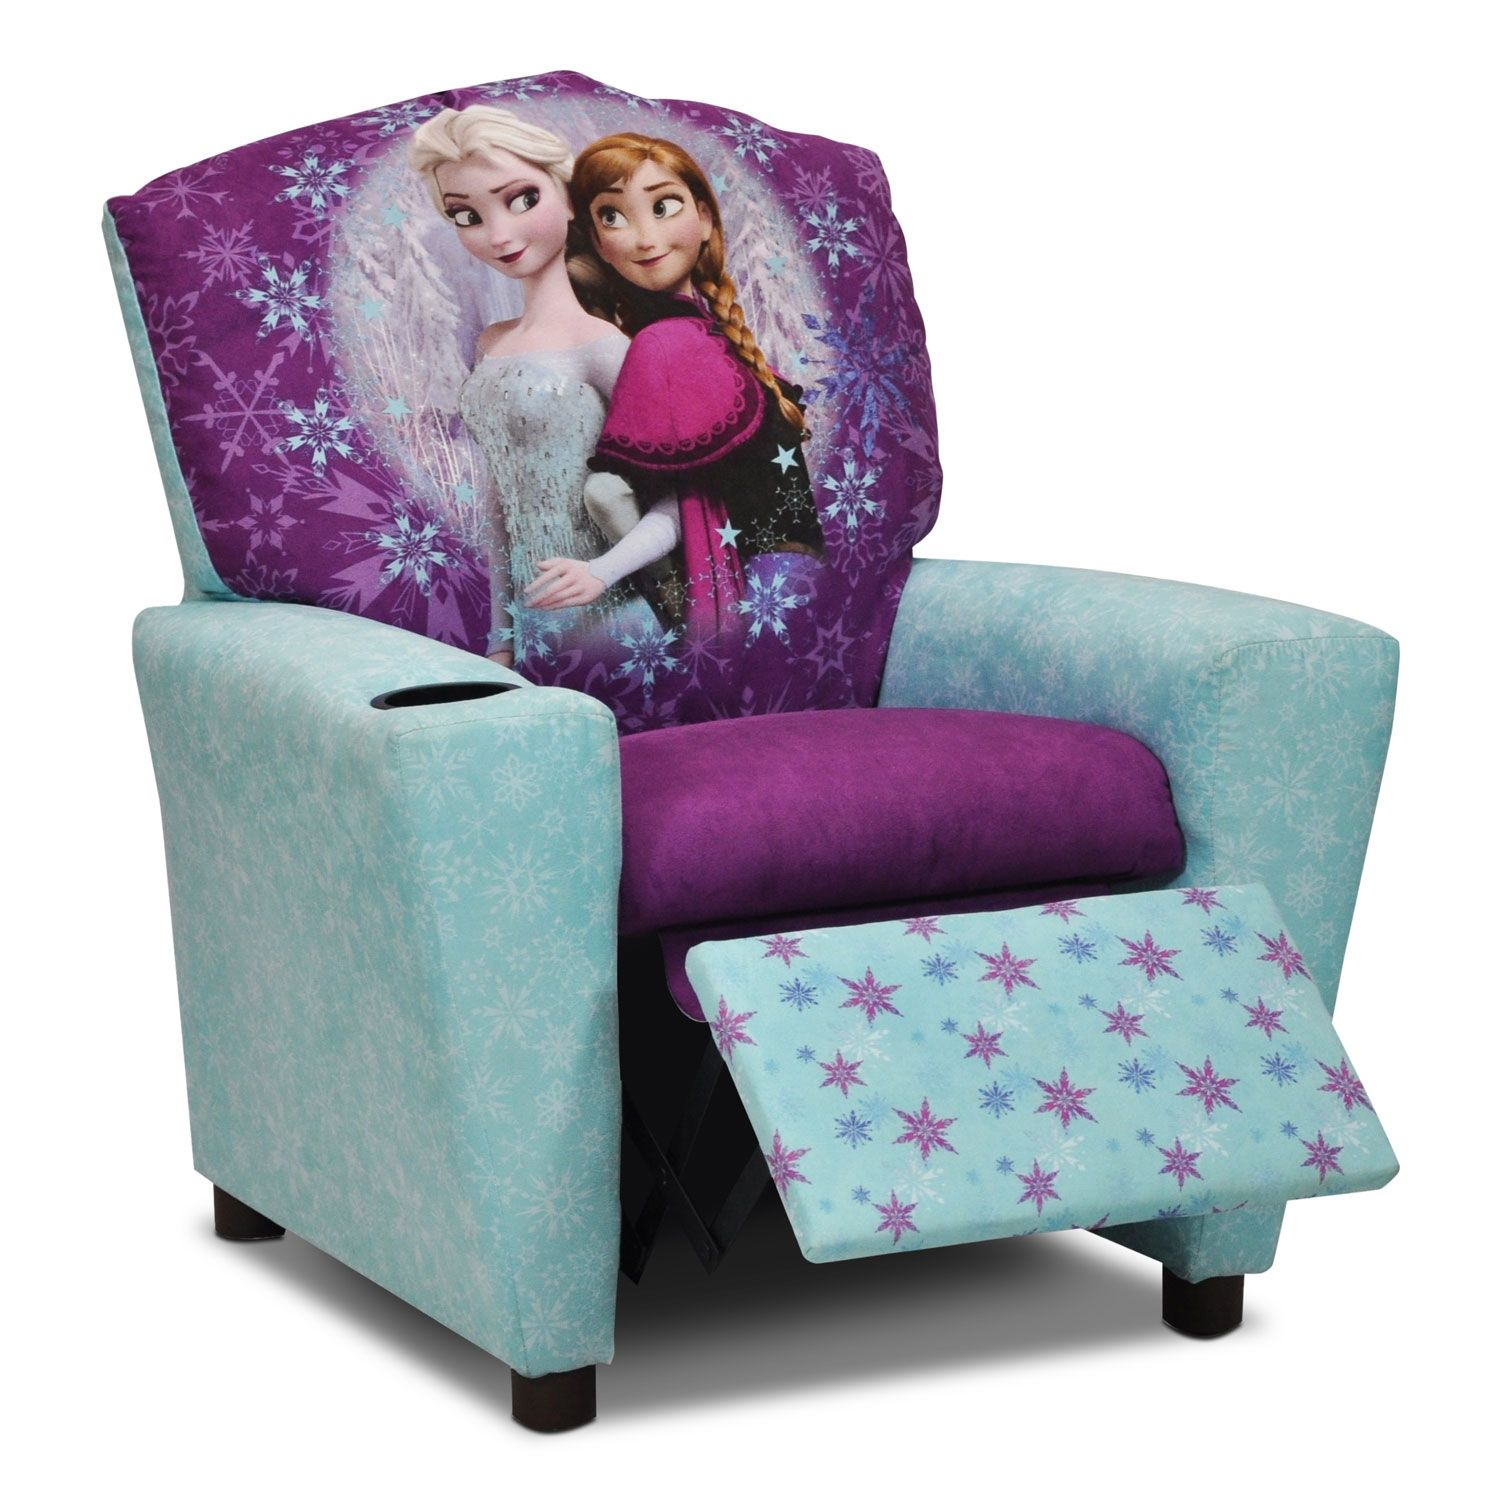 Living Room Furniture-Frozen Kidsu0027 Recliner  sc 1 st  Pinterest & Living Room Furniture-Frozen Kidsu0027 Recliner | Leonu0027s Furniture ... islam-shia.org